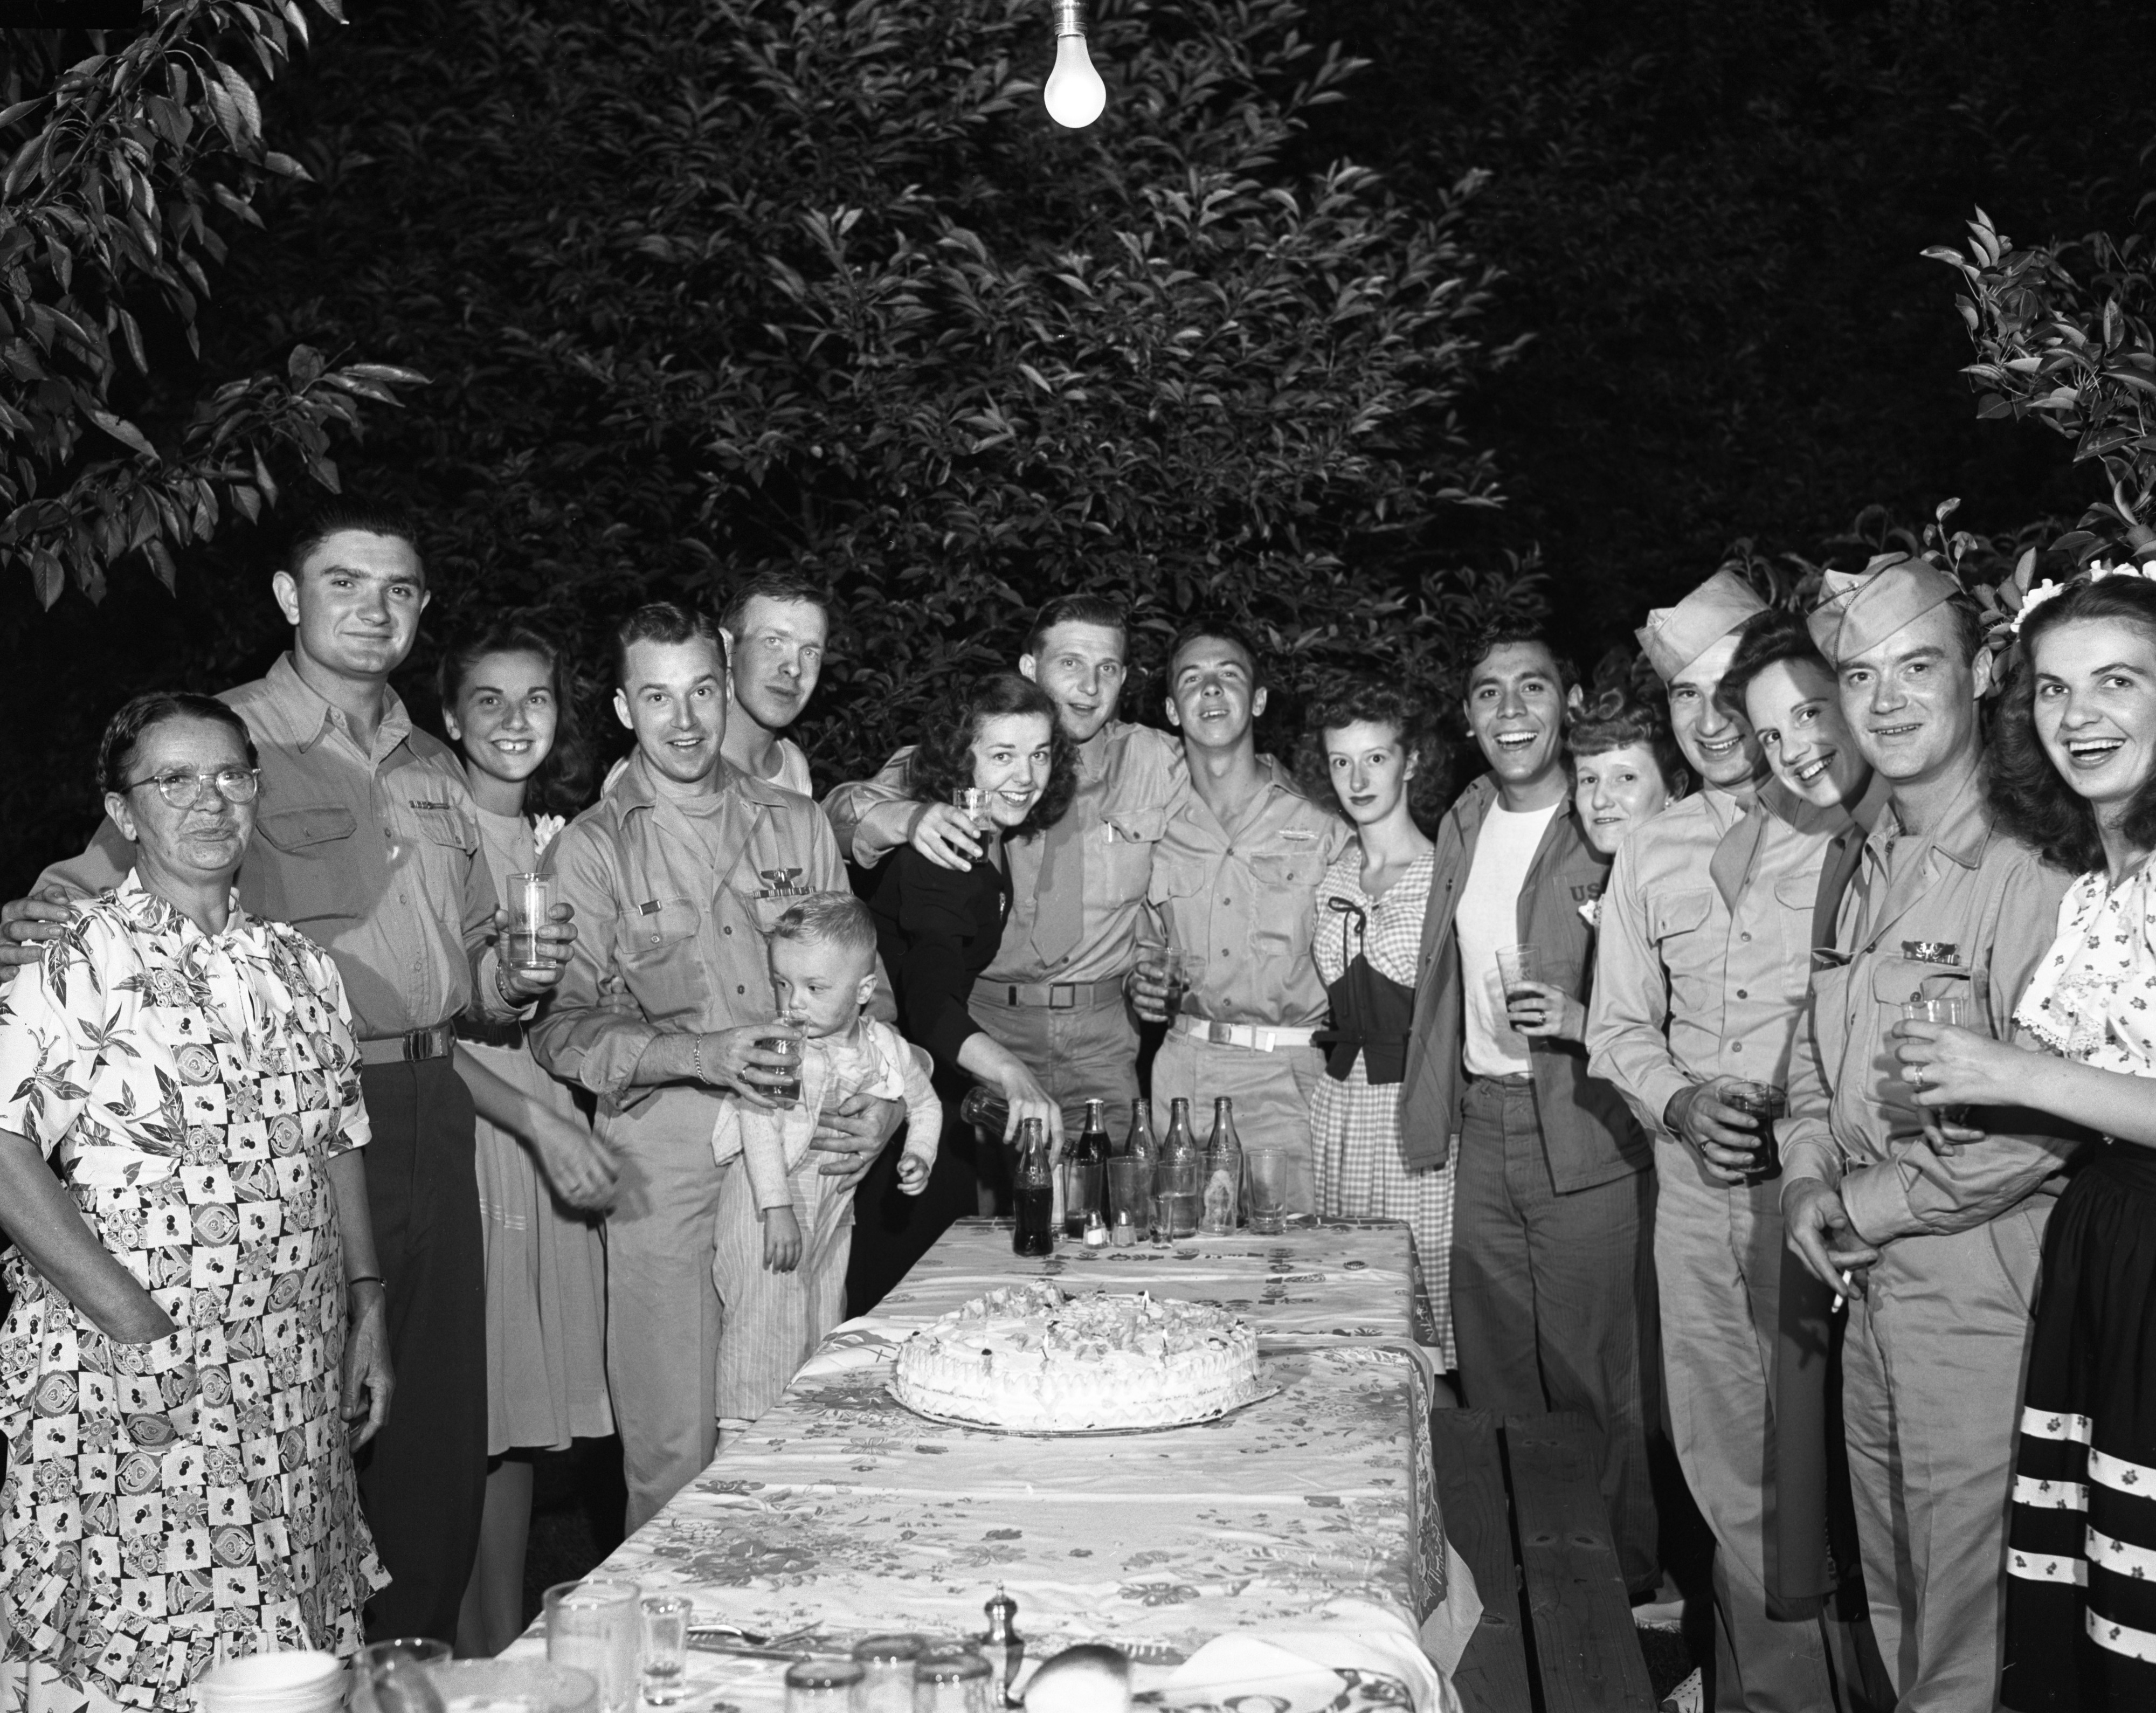 Anna Hedledsky's party for WWII soldiers, August 1945 image